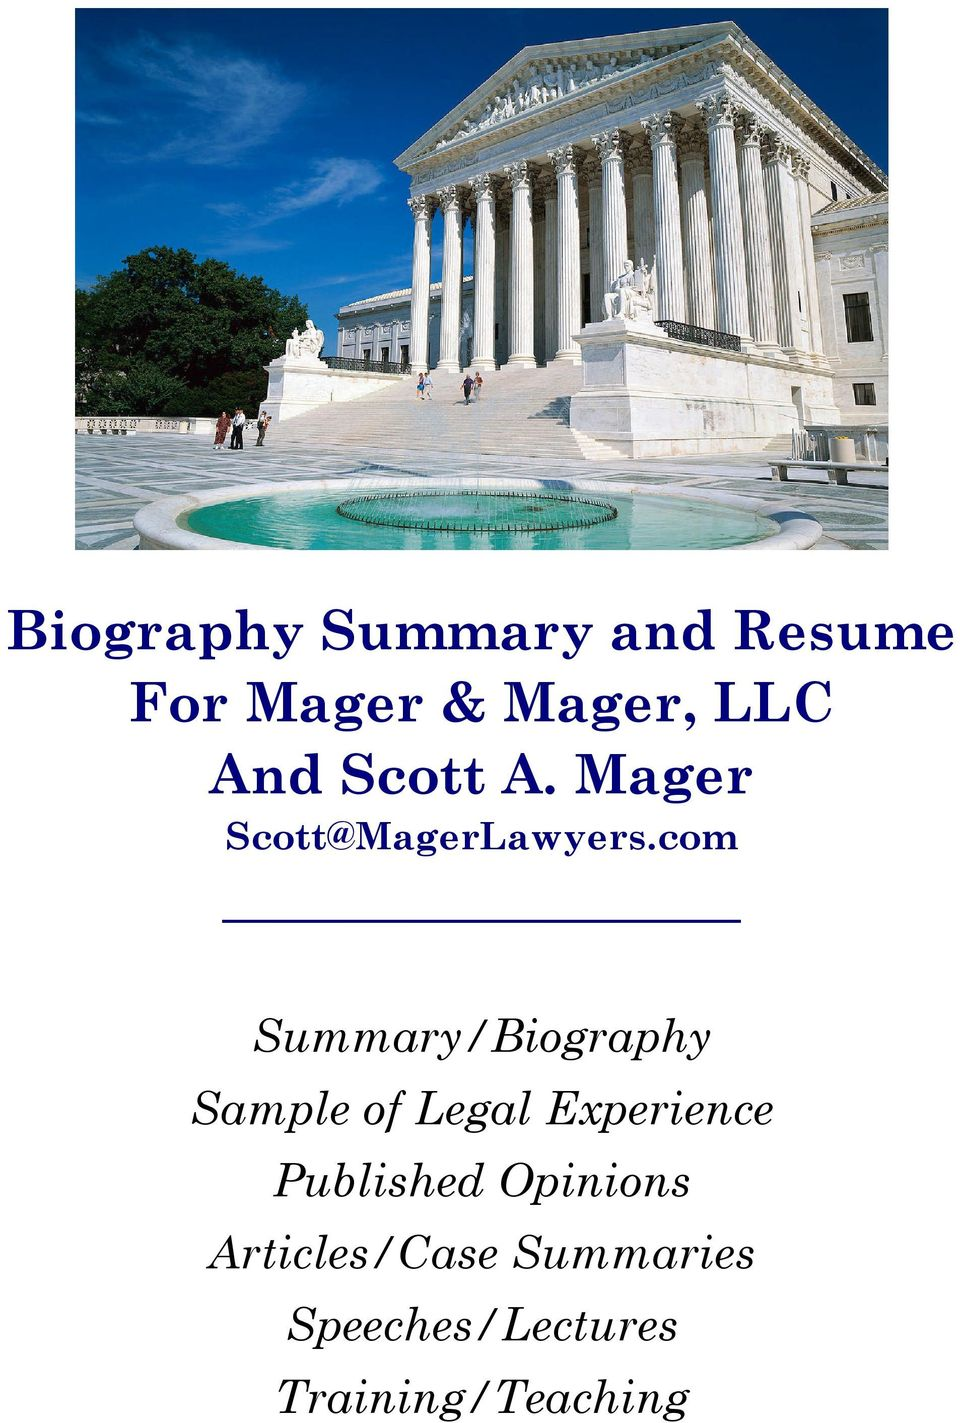 com Summary/Biography Sample of Legal Experience